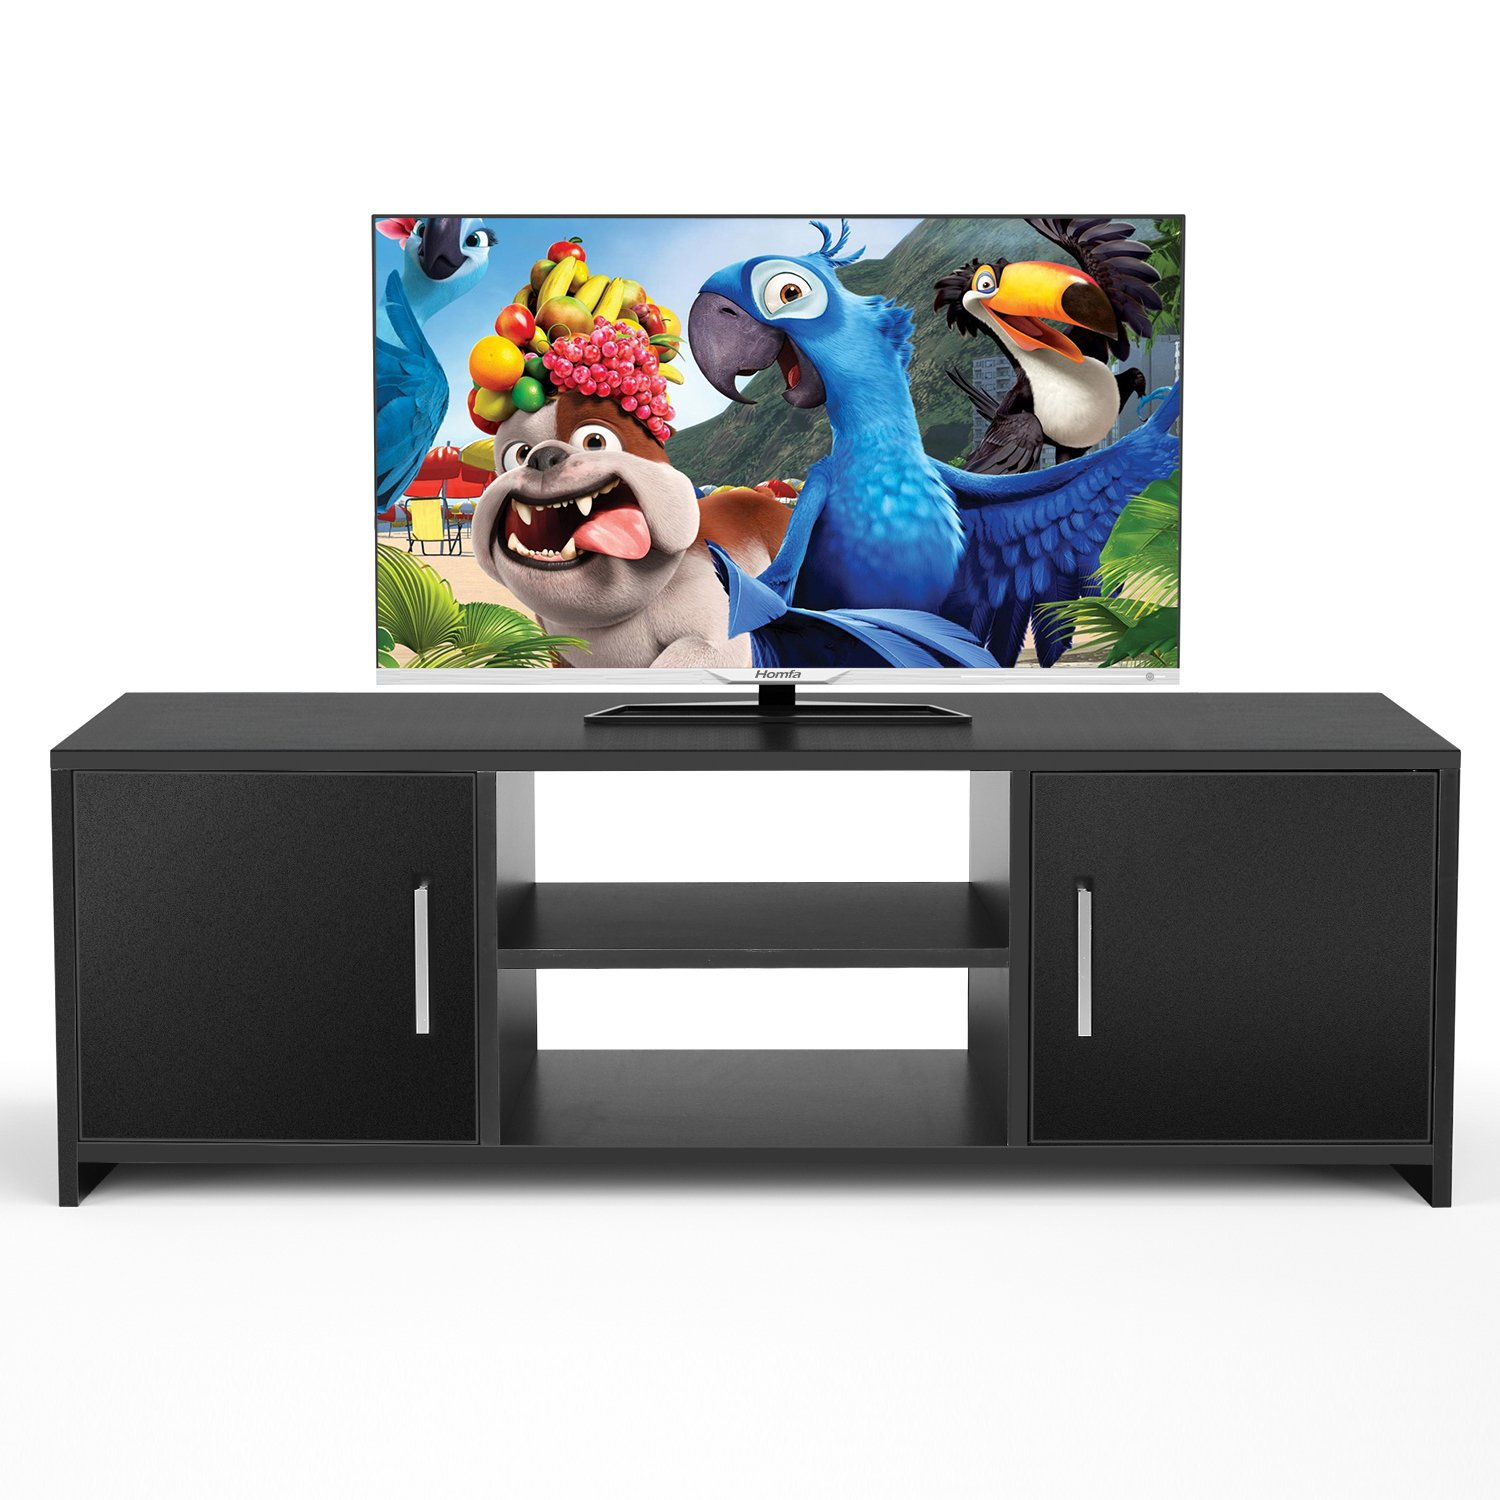 Homfa TV Stand Storage Console Entertainment Center Media Console Cabinet with 2 Doors Bins and 2 Shelves for Living Room Home, Black